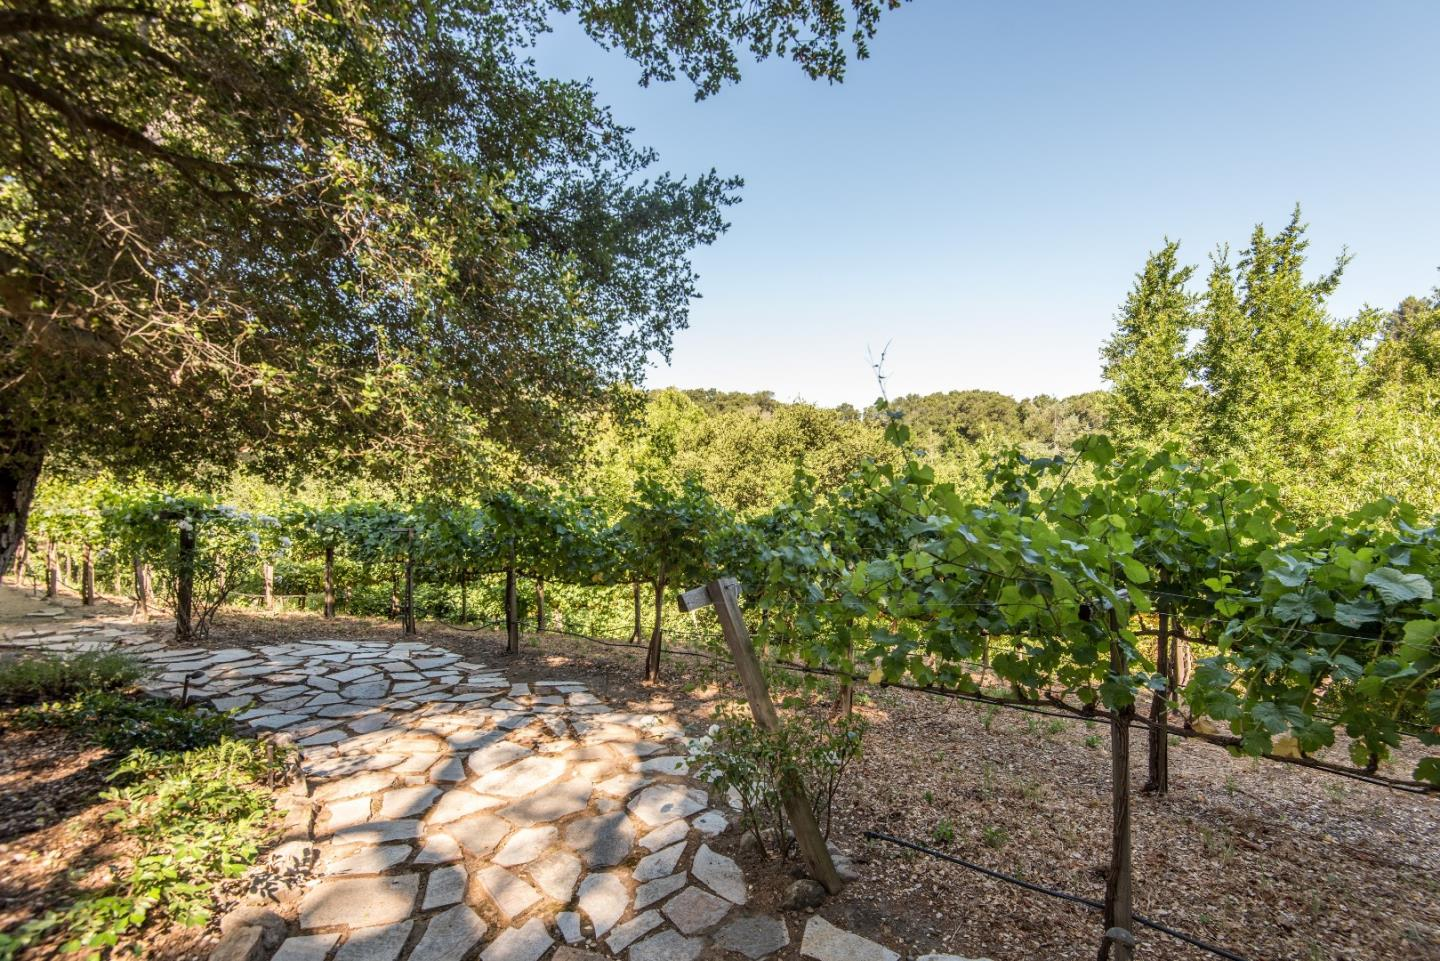 16181 MATILIJA Drive, Los Gatos, CA 95030 Los Gatos CA $4,995,000  MLS#81669179 Call Us About This Property (888)872 4827